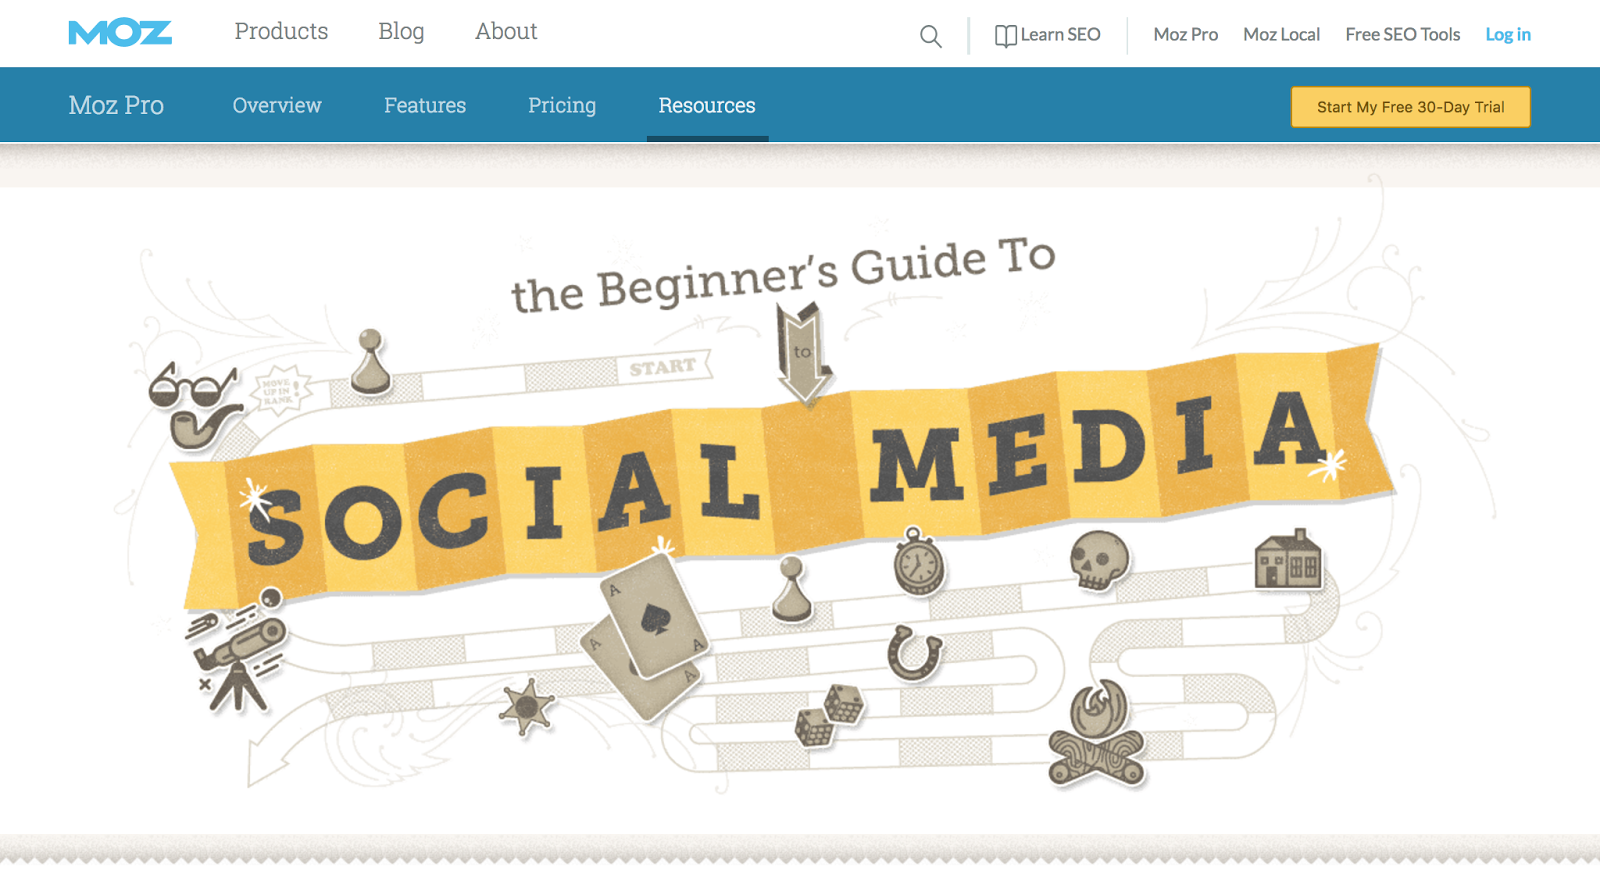 Moz's Beginner's Guide to Social Media is one of the most detailed and comprehensive guides to social media marketing available.